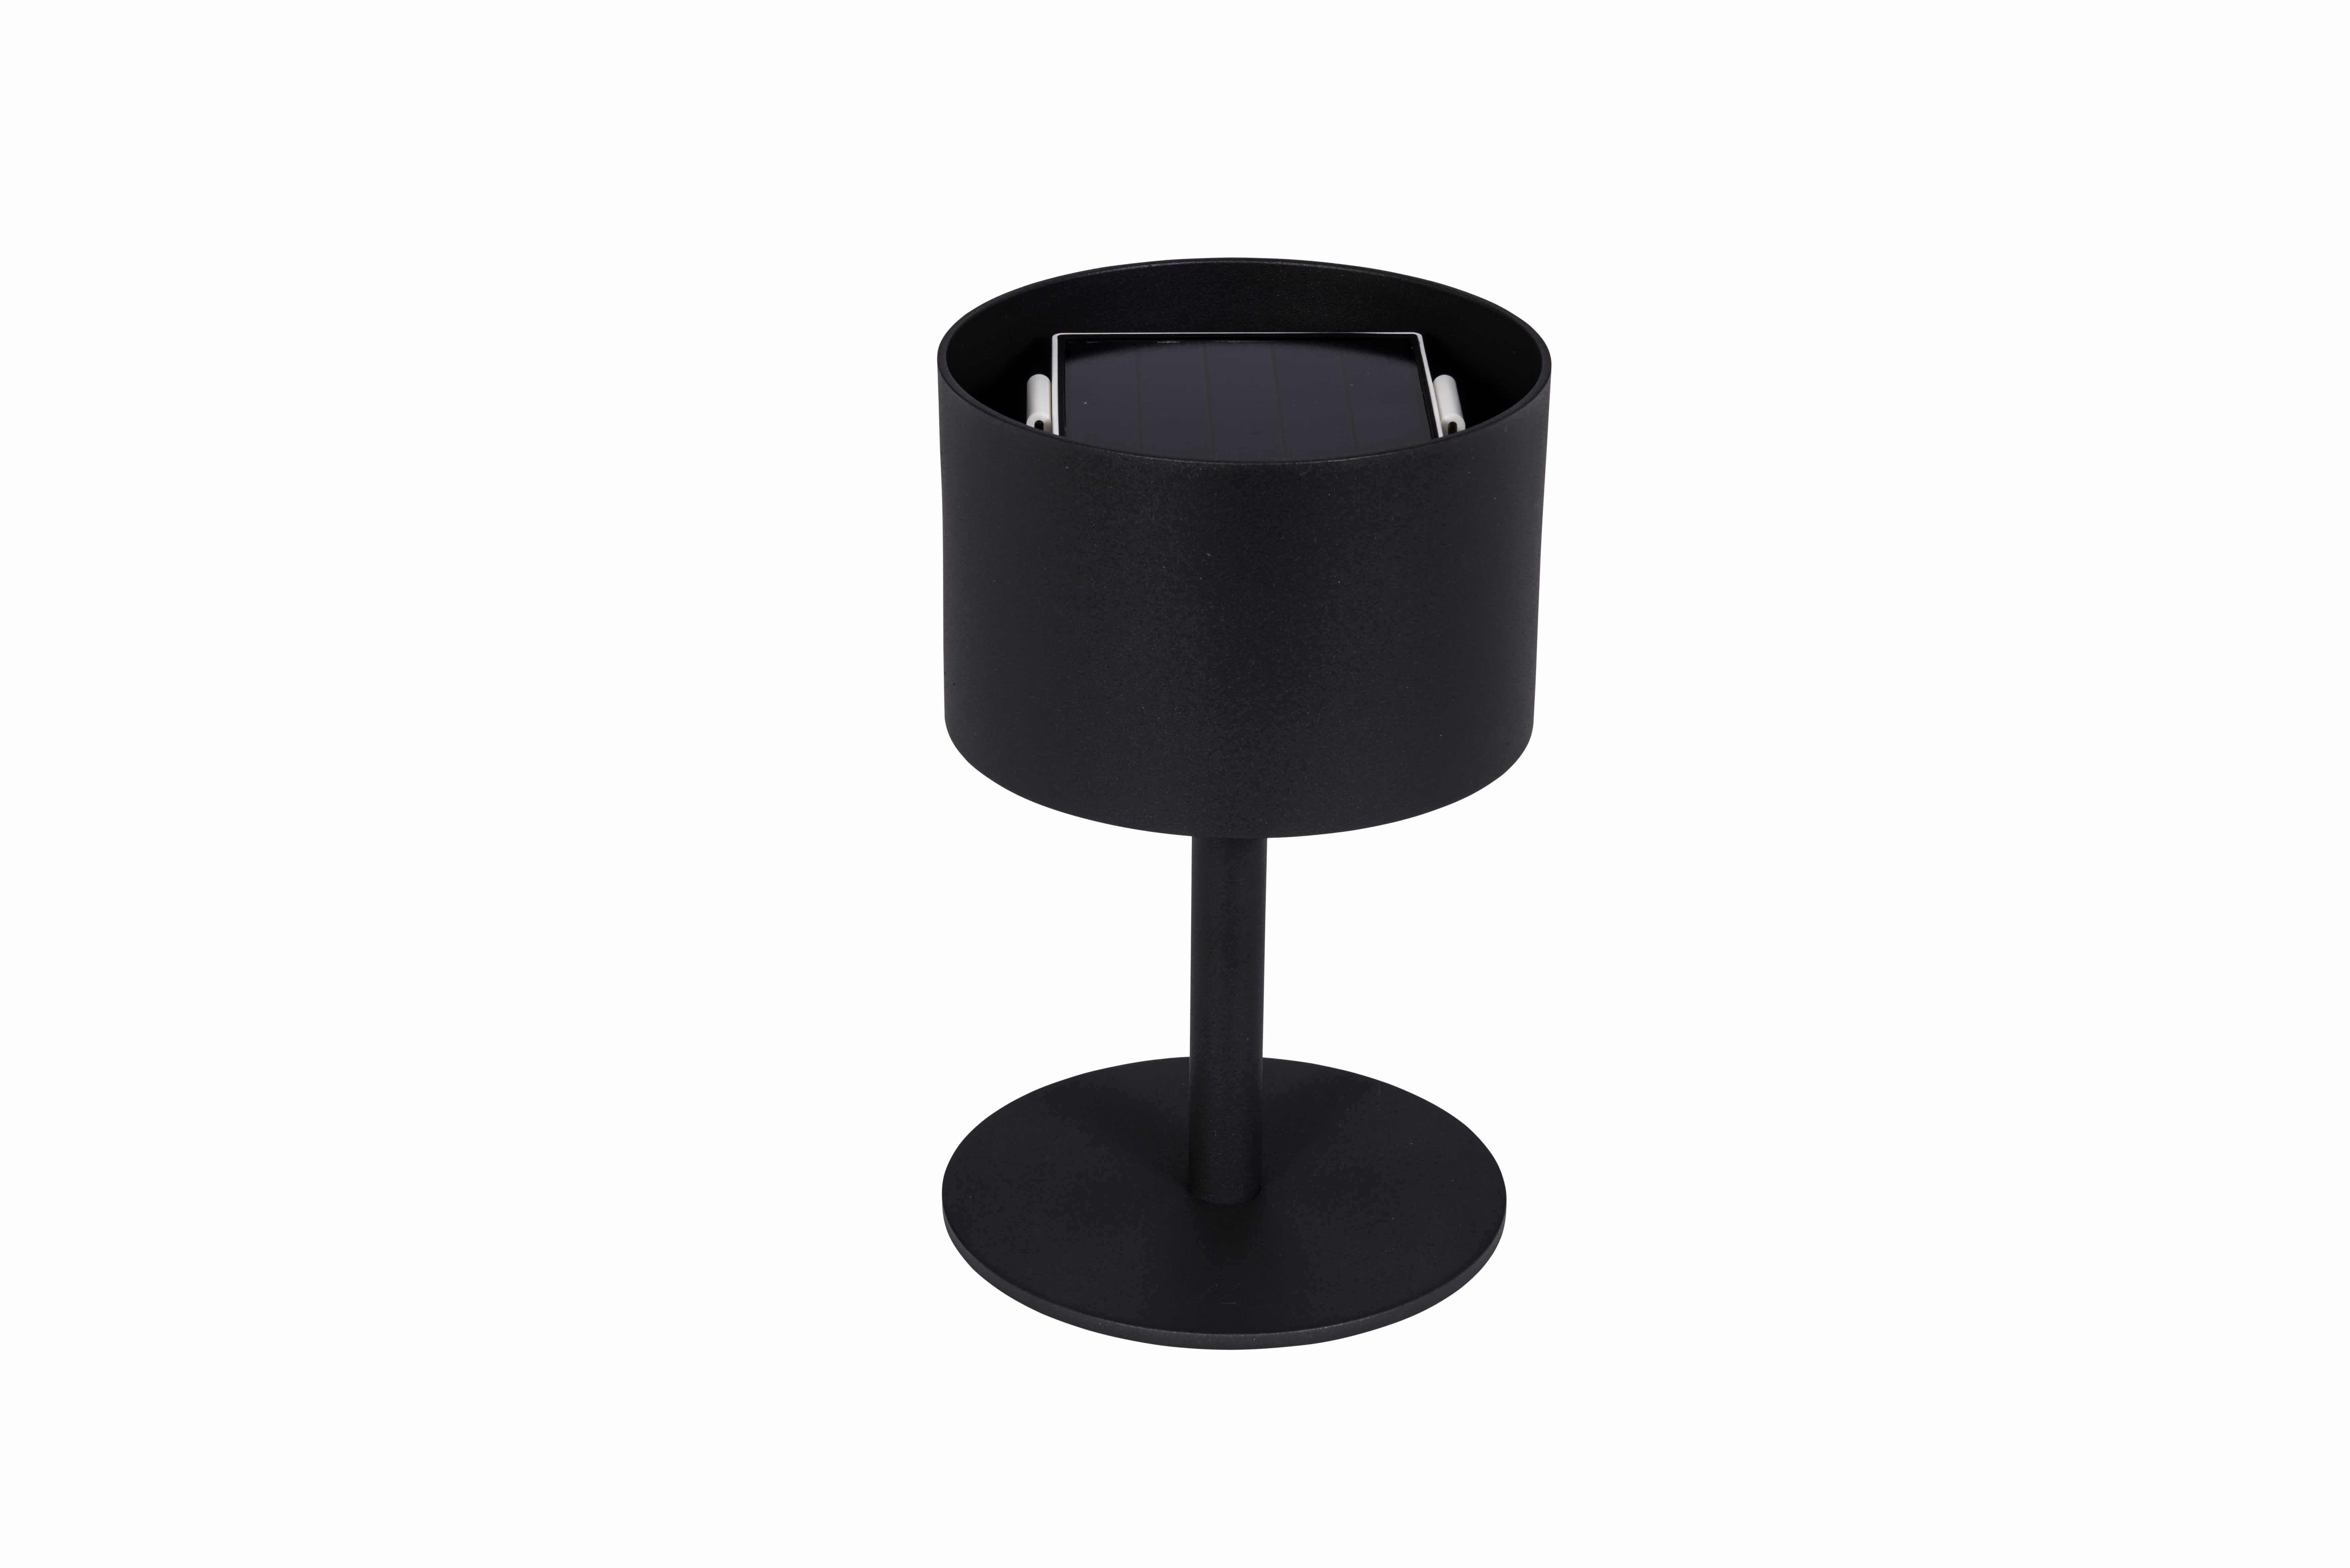 La Lampe Pose   This Style Light Is Available In Charcoal And White, In  Both Round And Square Shades. View The Full Outdoor Lighting Collection Of  La Lampe ...